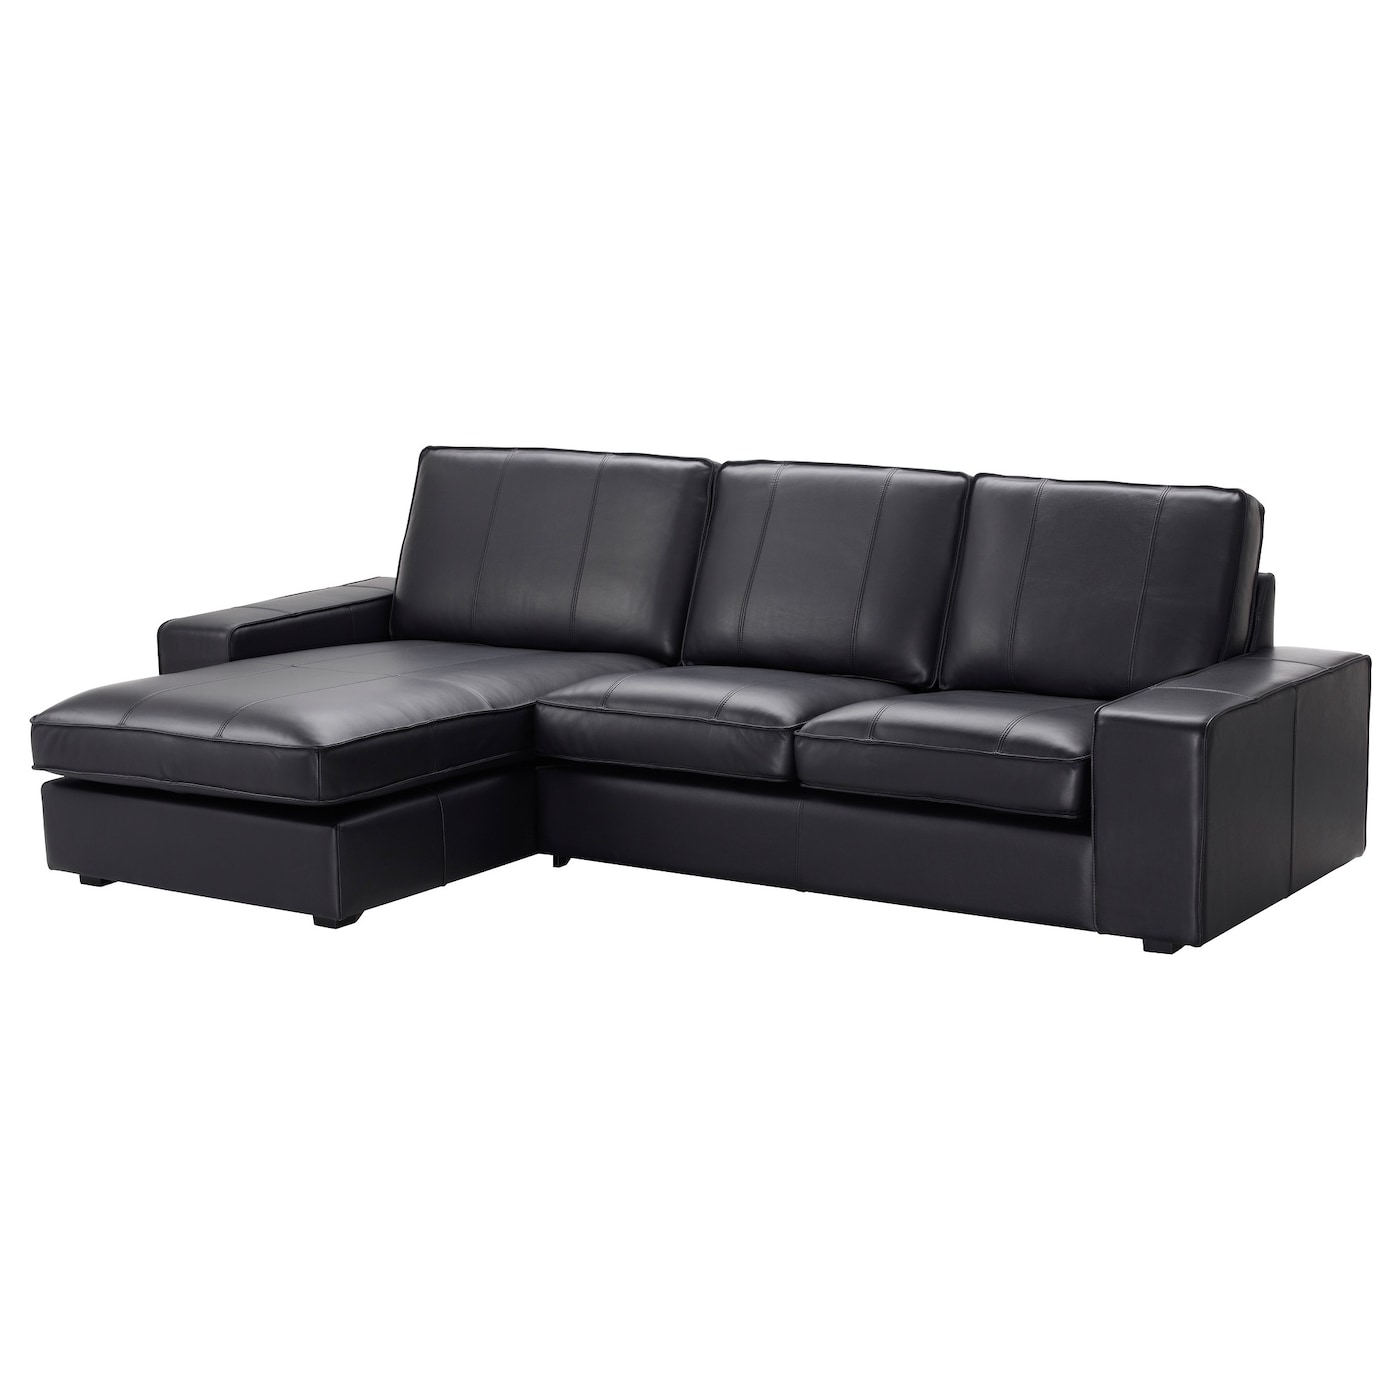 IKEA KIVIK 3-seat sofa 10 year guarantee. Read about the terms in the guarantee brochure.